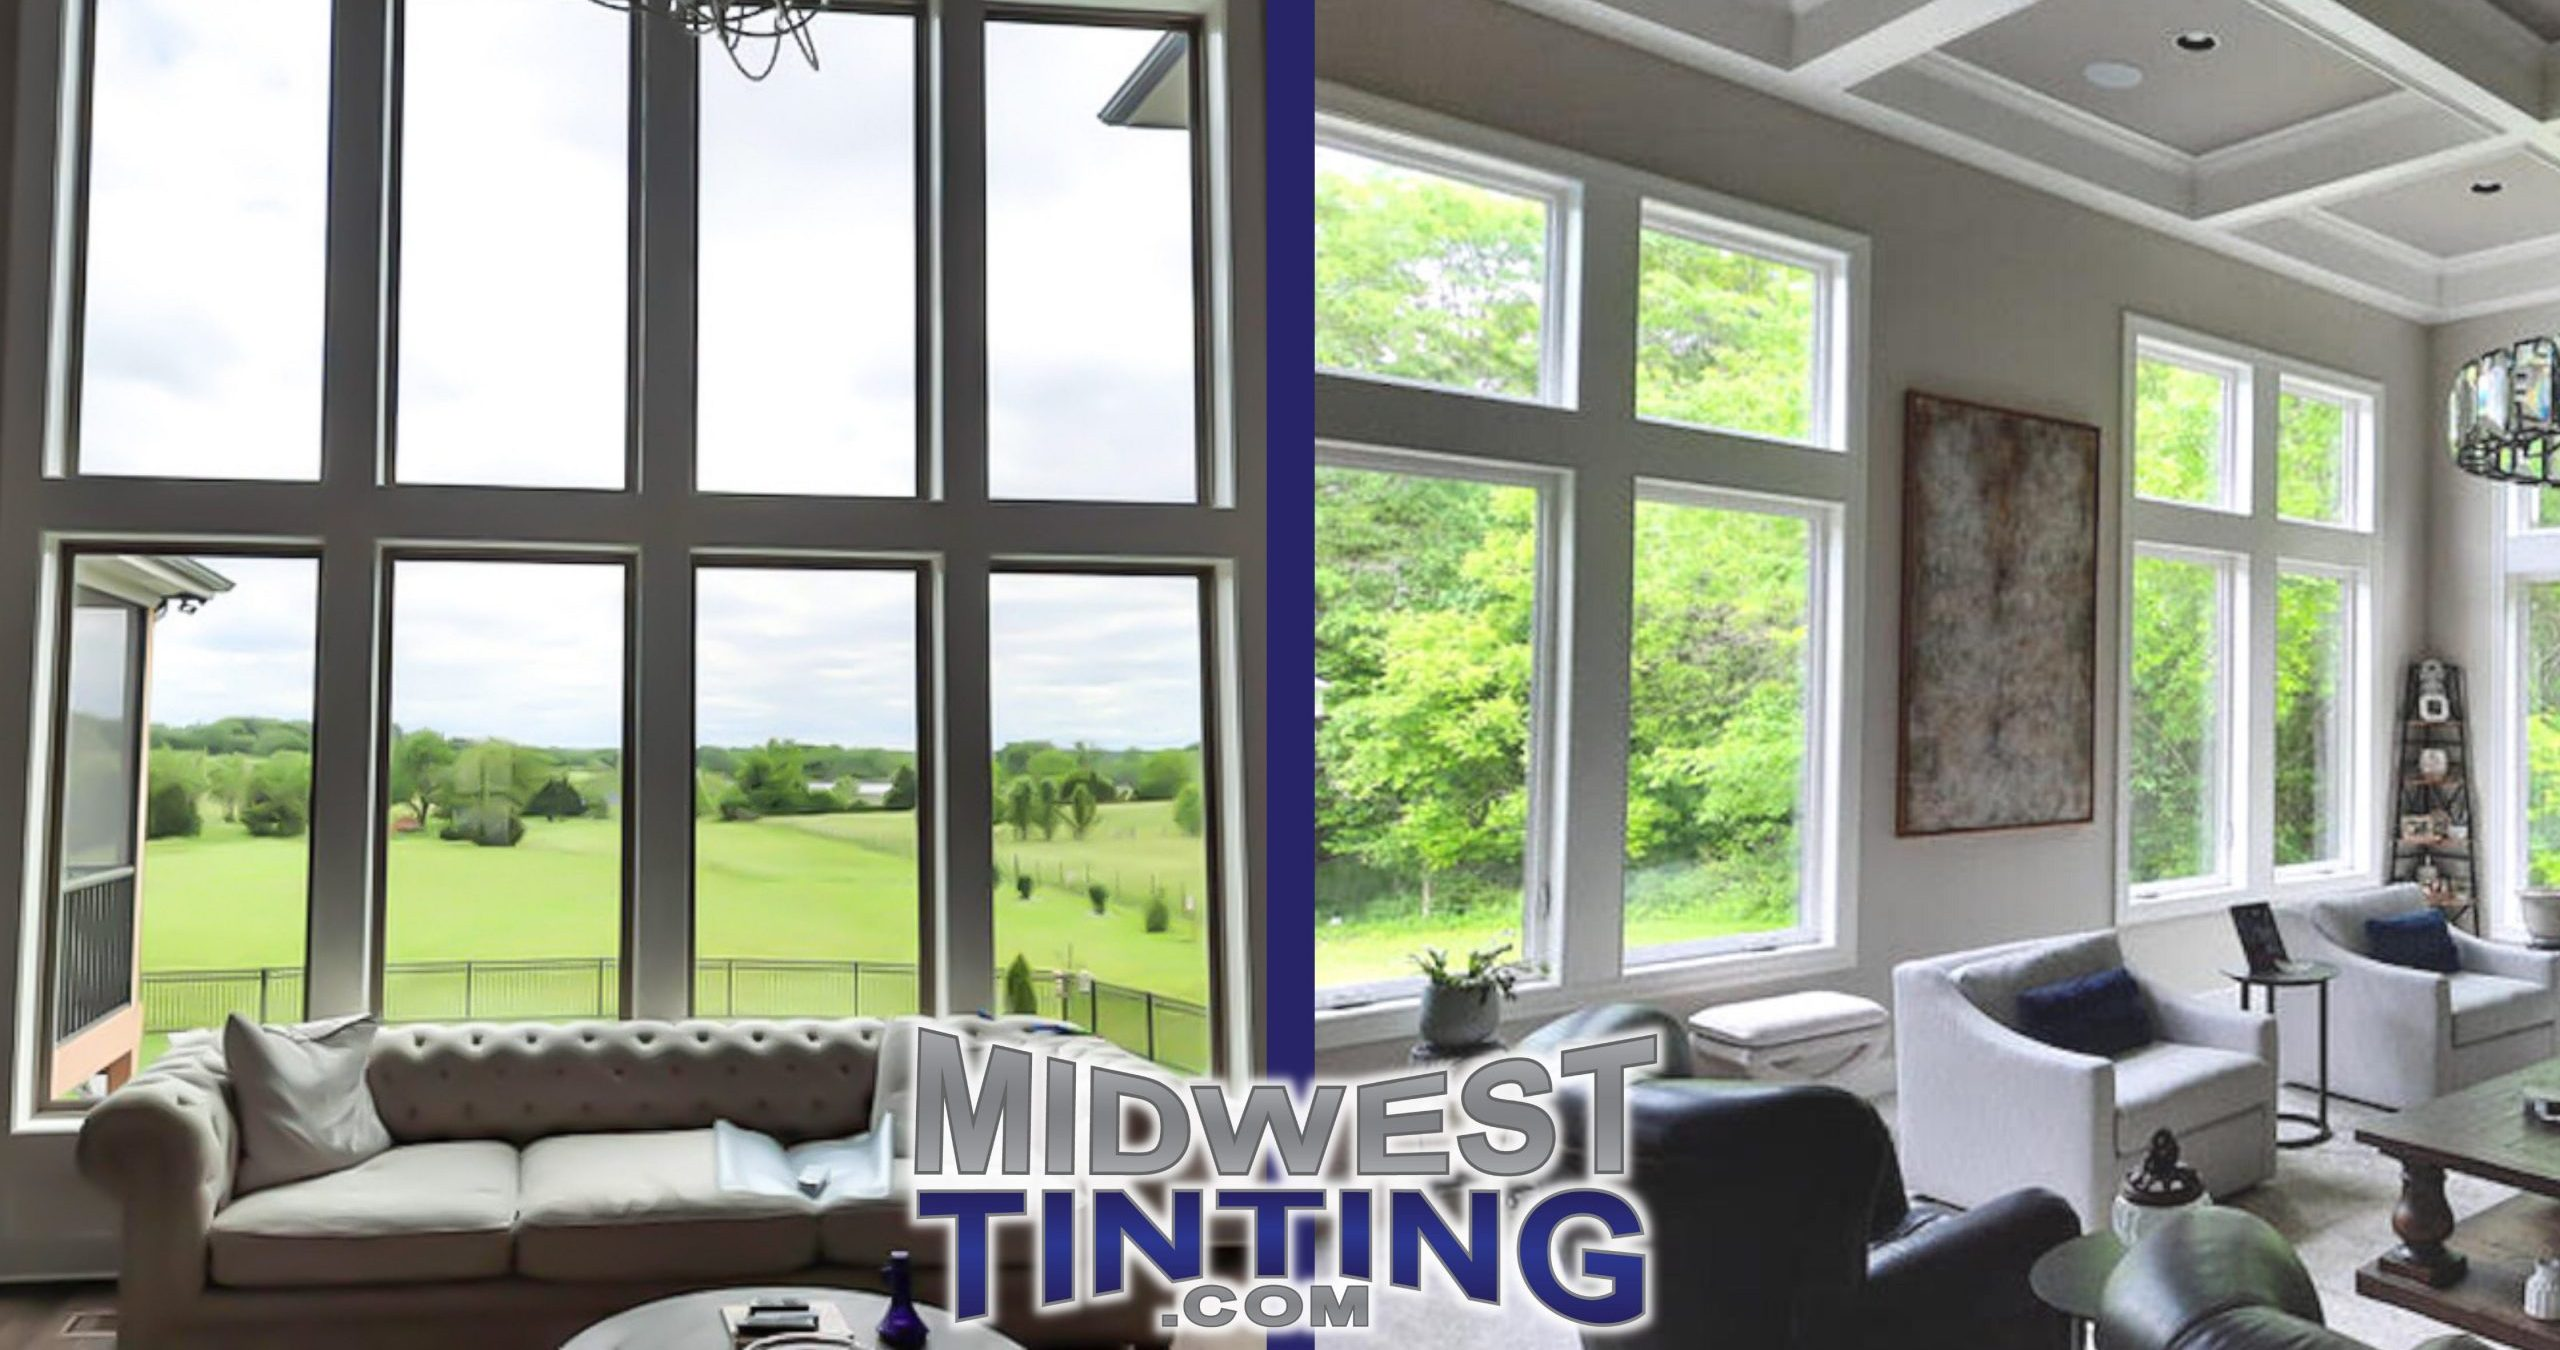 Home Window Films Provide Many Benefits As Summer Heat Arrives - Home Window Film and Window Tinting in Kansas City